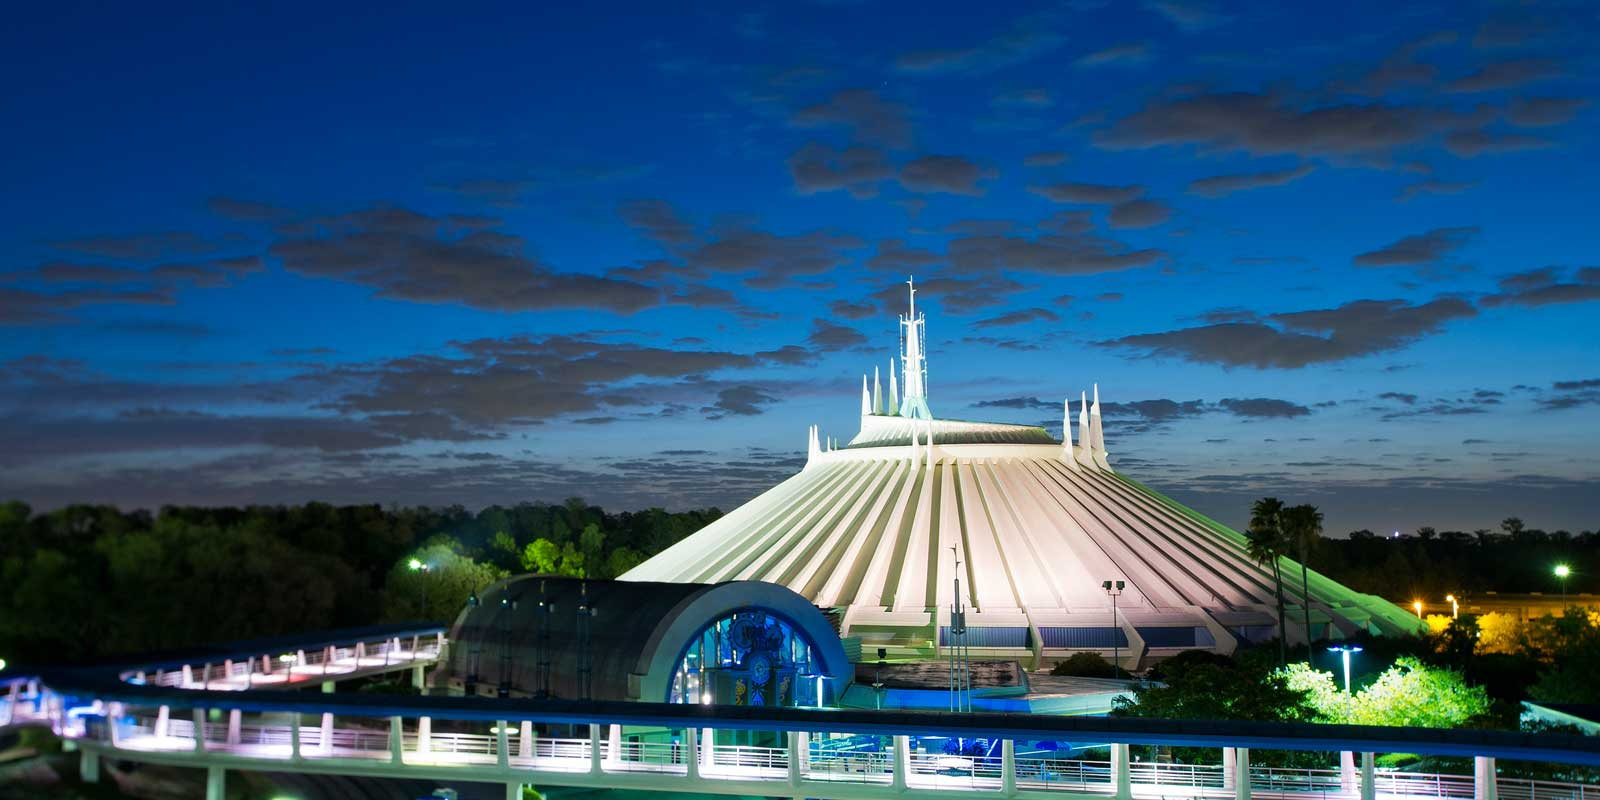 Ride Space Mountain, an epic glow-in-the-dark roller coaster, at Magic Kingdom. Lines can be long, so get a Fastpass. Check out my other Fastpass tips for adults at all of Disney World's parks.